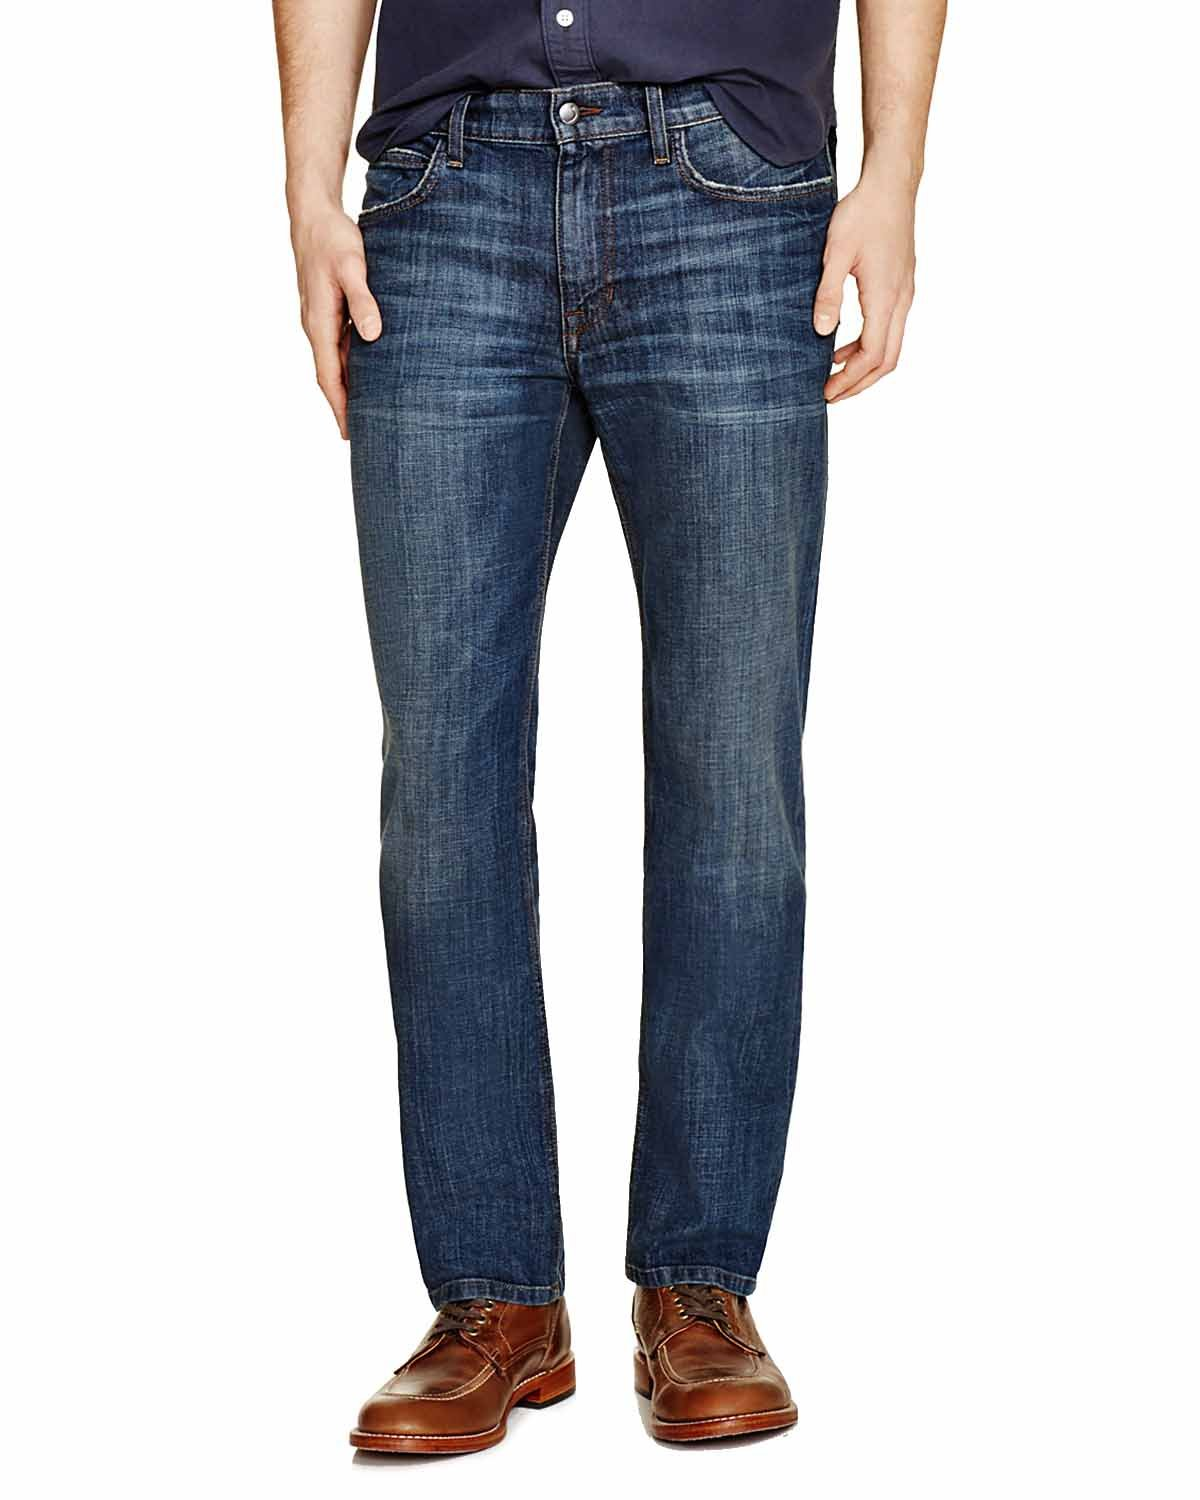 Joe's Jeans Men's Brixton Straight and Narrow Fit Jeans (33, Santi)